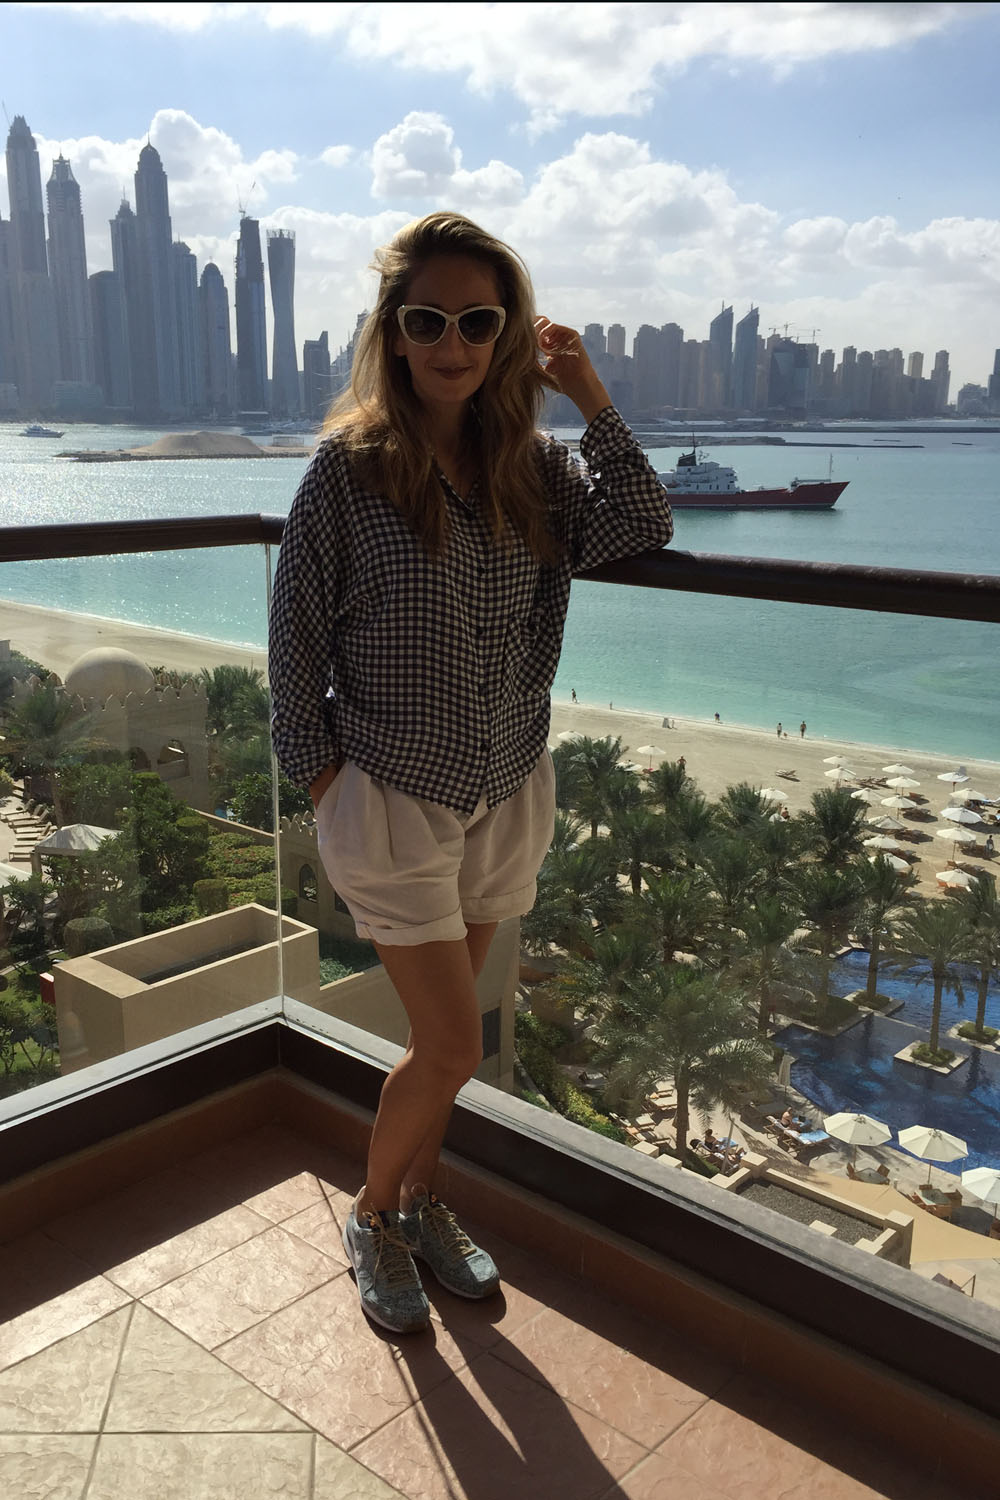 colourclub-dubai-fairmont-the-palm-the-view-from-our-balcony